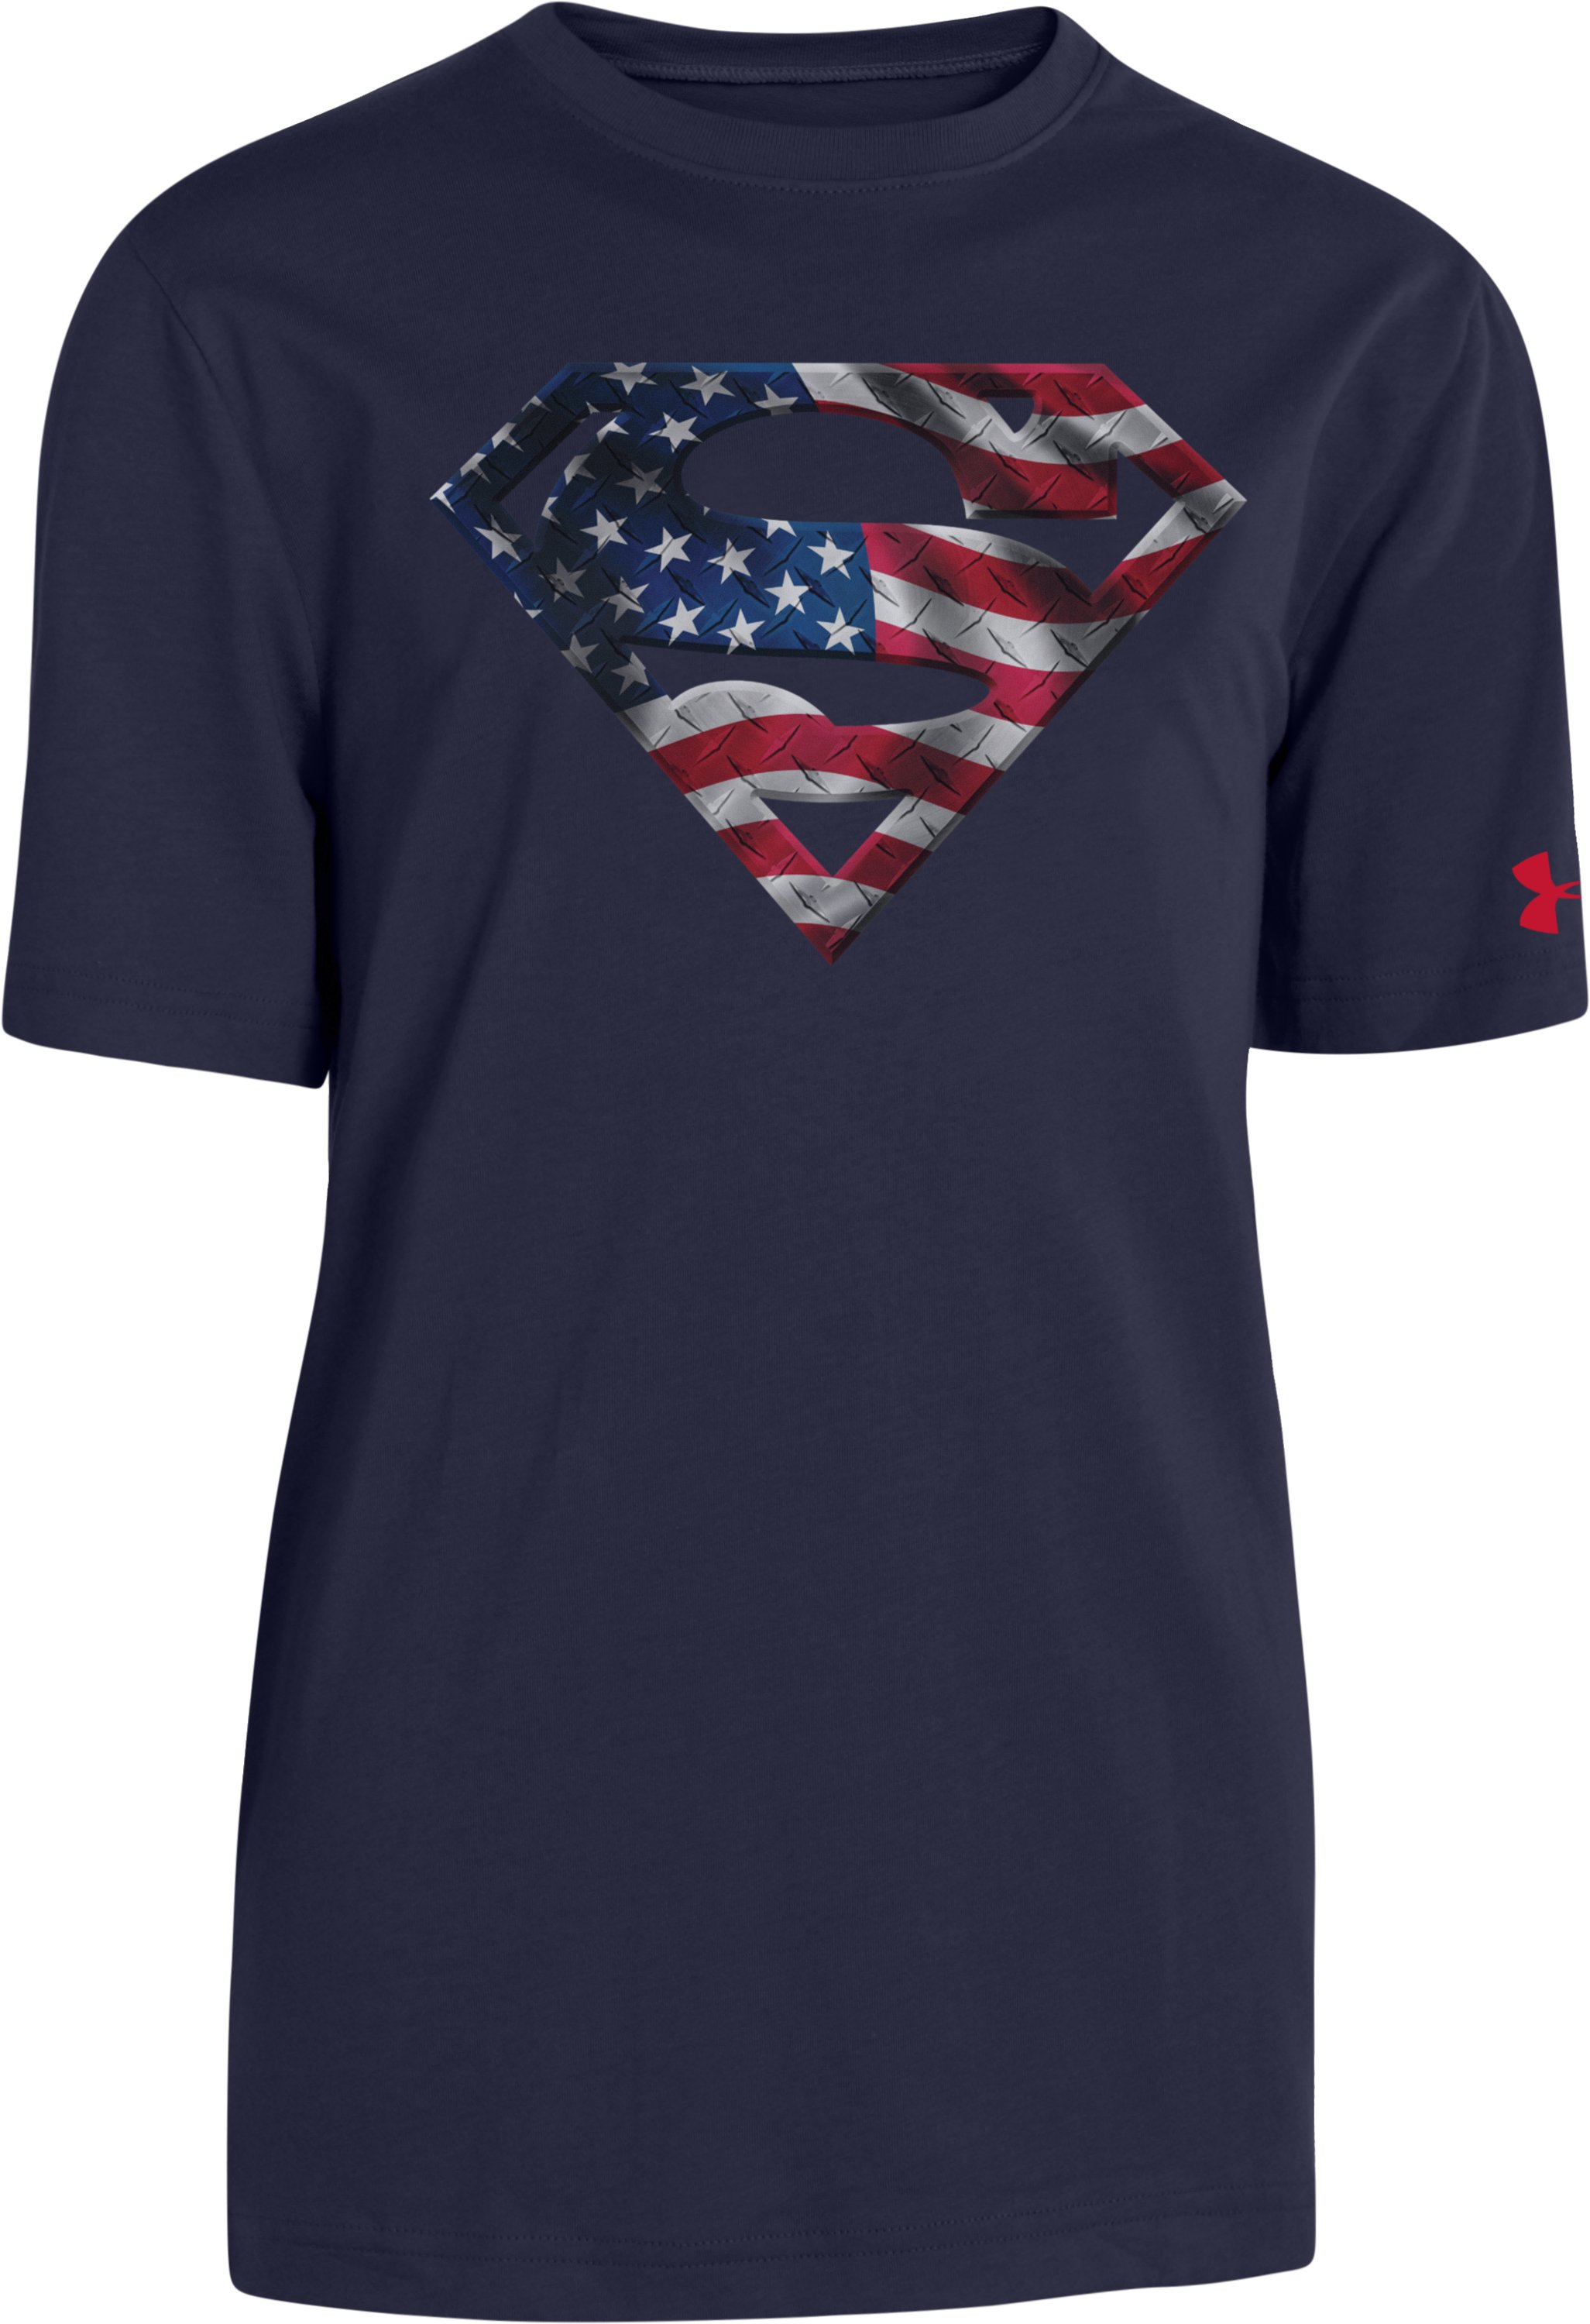 Boys' USA Under Armour® Alter Ego Superman T-Shirt, Midnight Navy, zoomed image